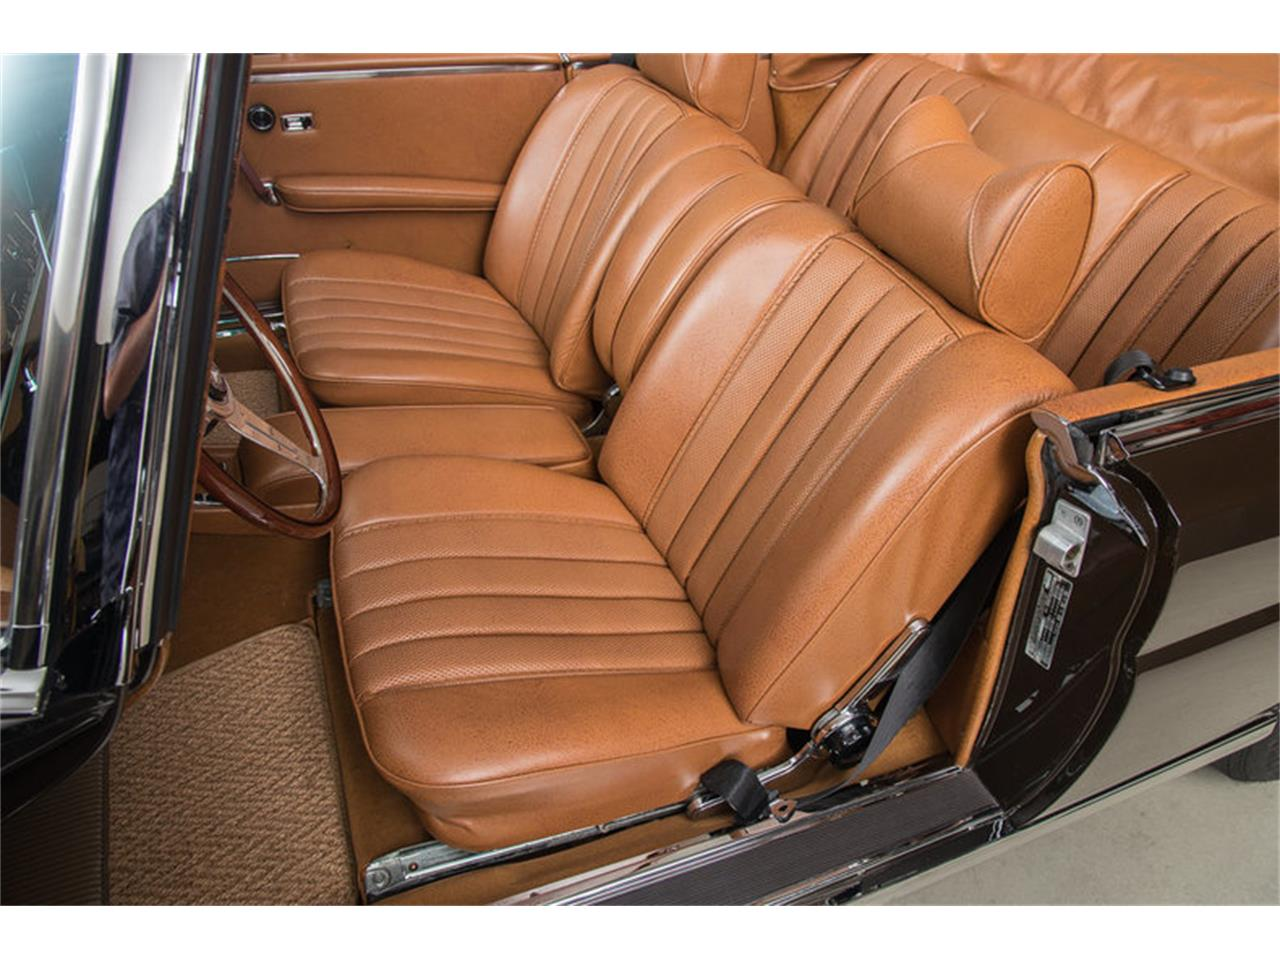 Large Picture of '71 Mercedes-Benz 280 SE 3.5 Cabriolet located in Scotts Valley California Auction Vehicle - G0JQ